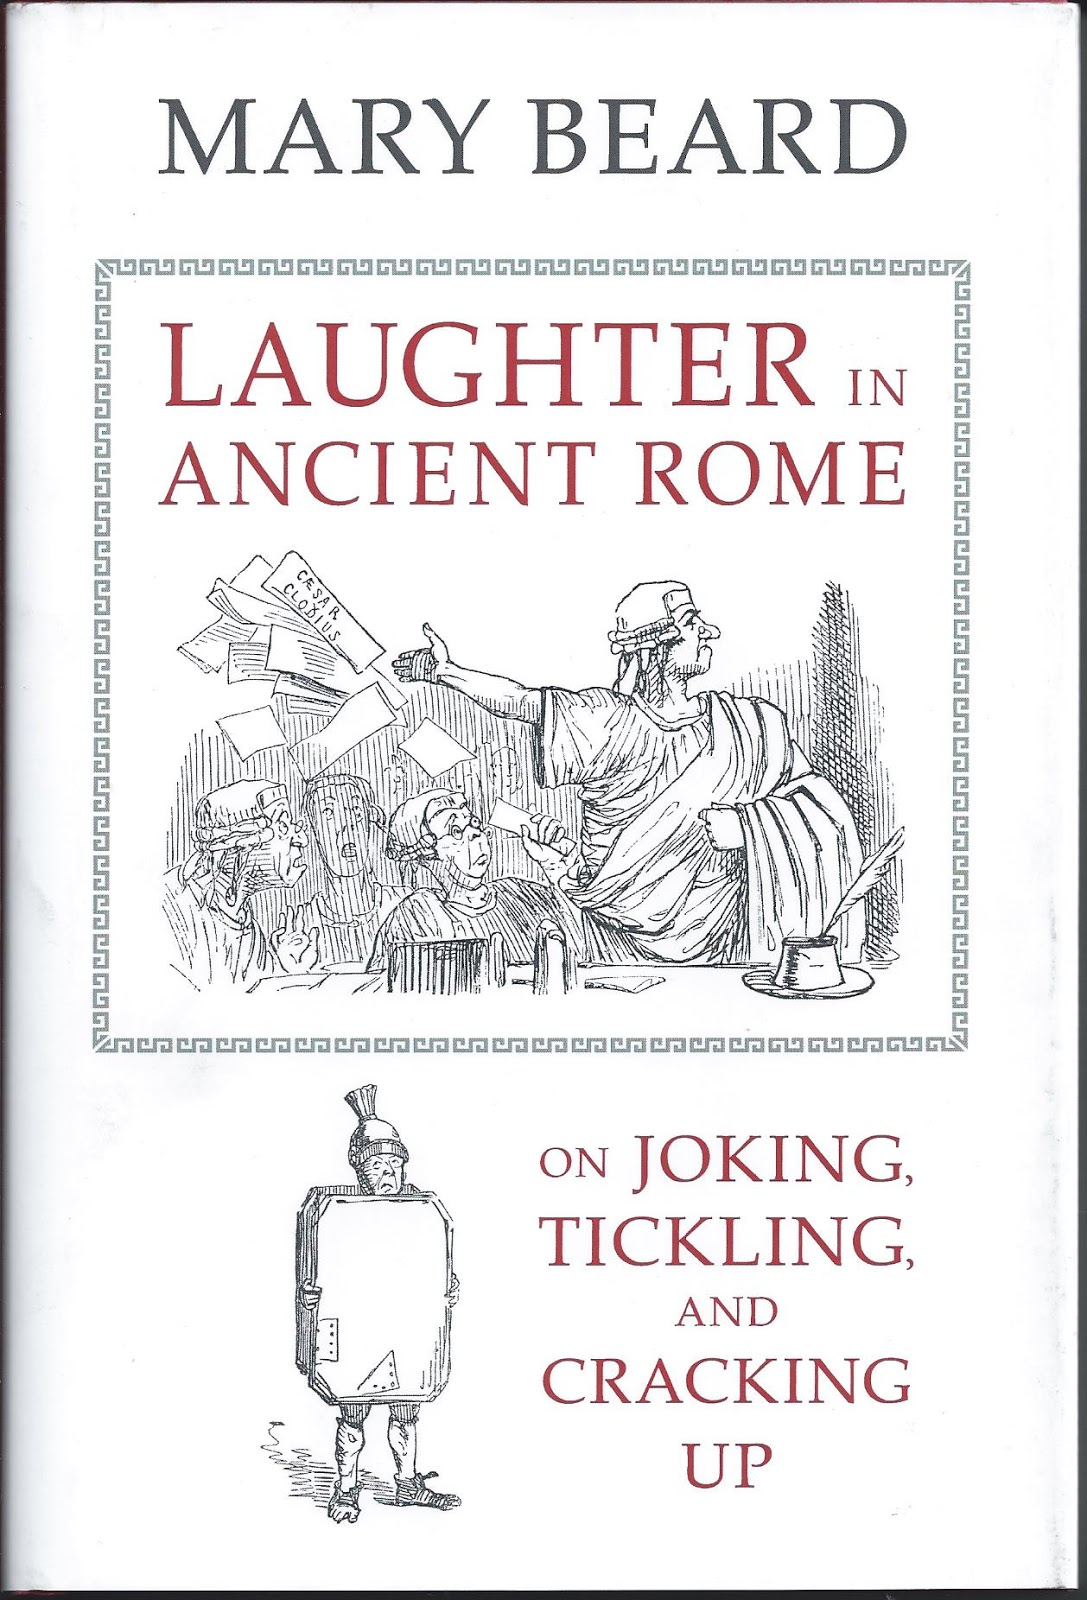 Tickling and Cracking Up On Joking Laughter in Ancient Rome